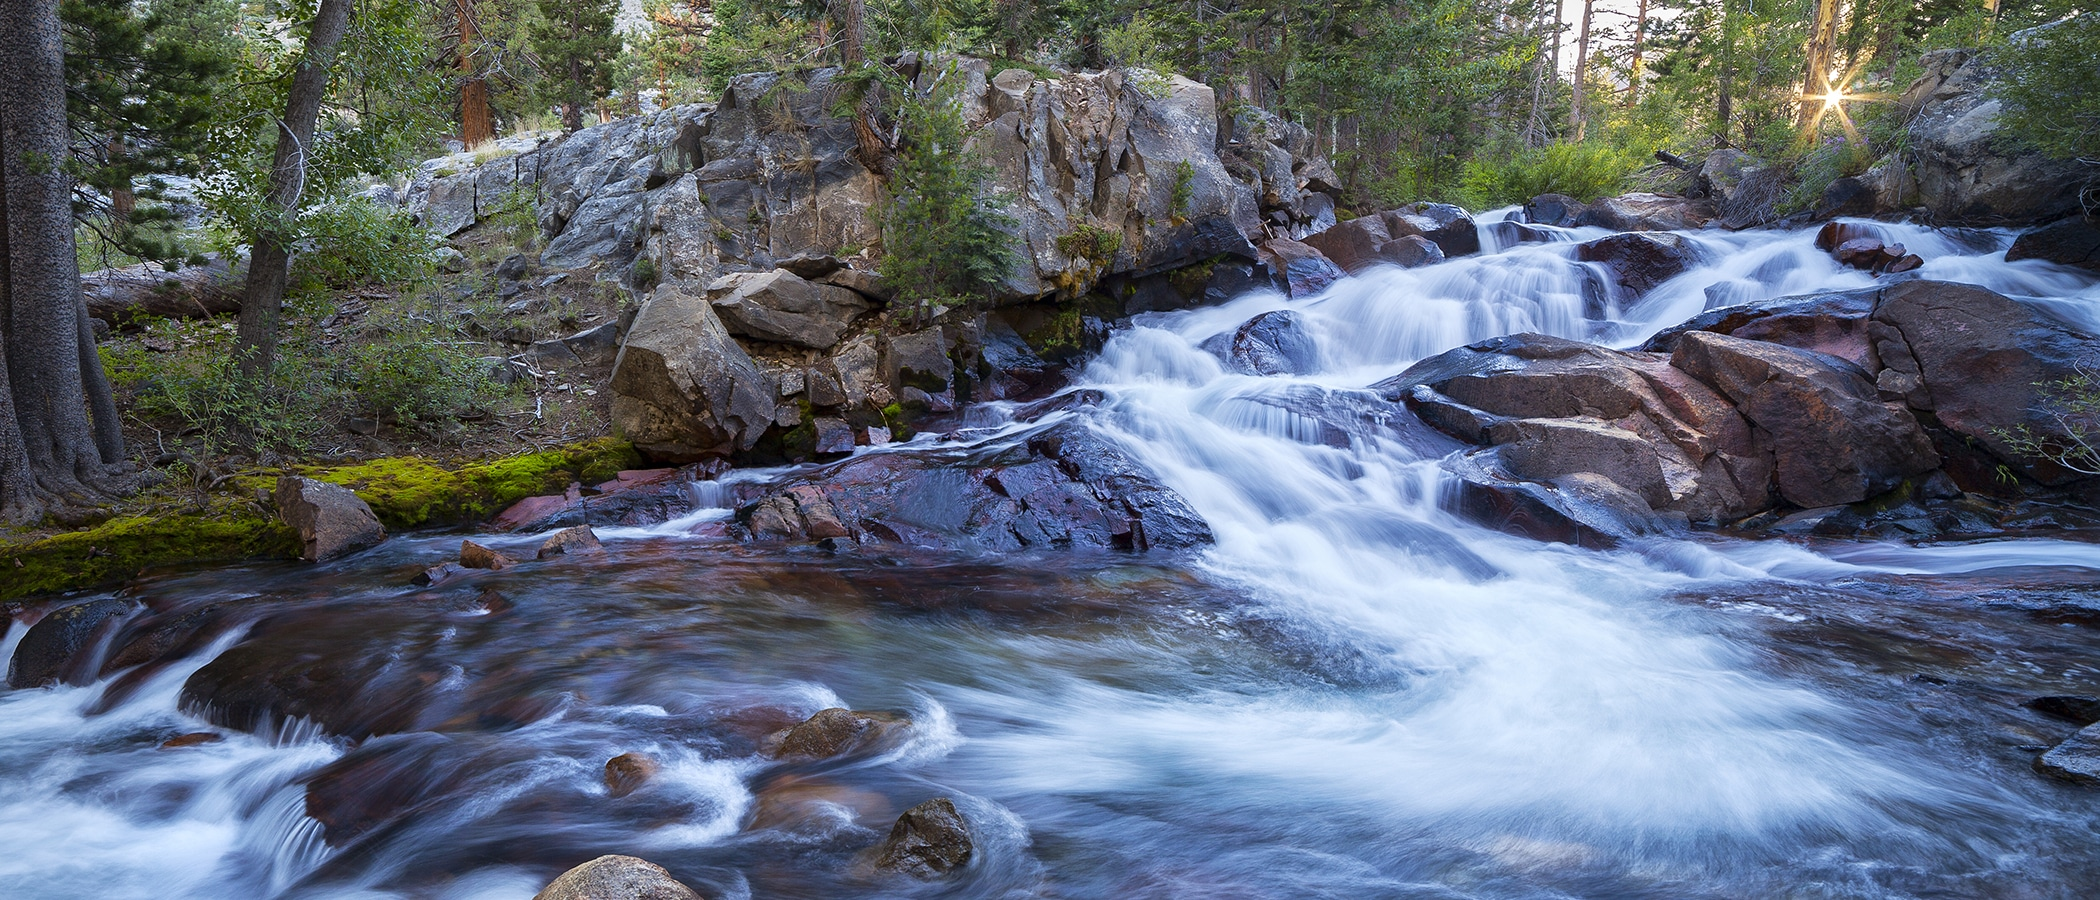 White water rushes over large rocks and swirls around a bend in a green mossy forest.